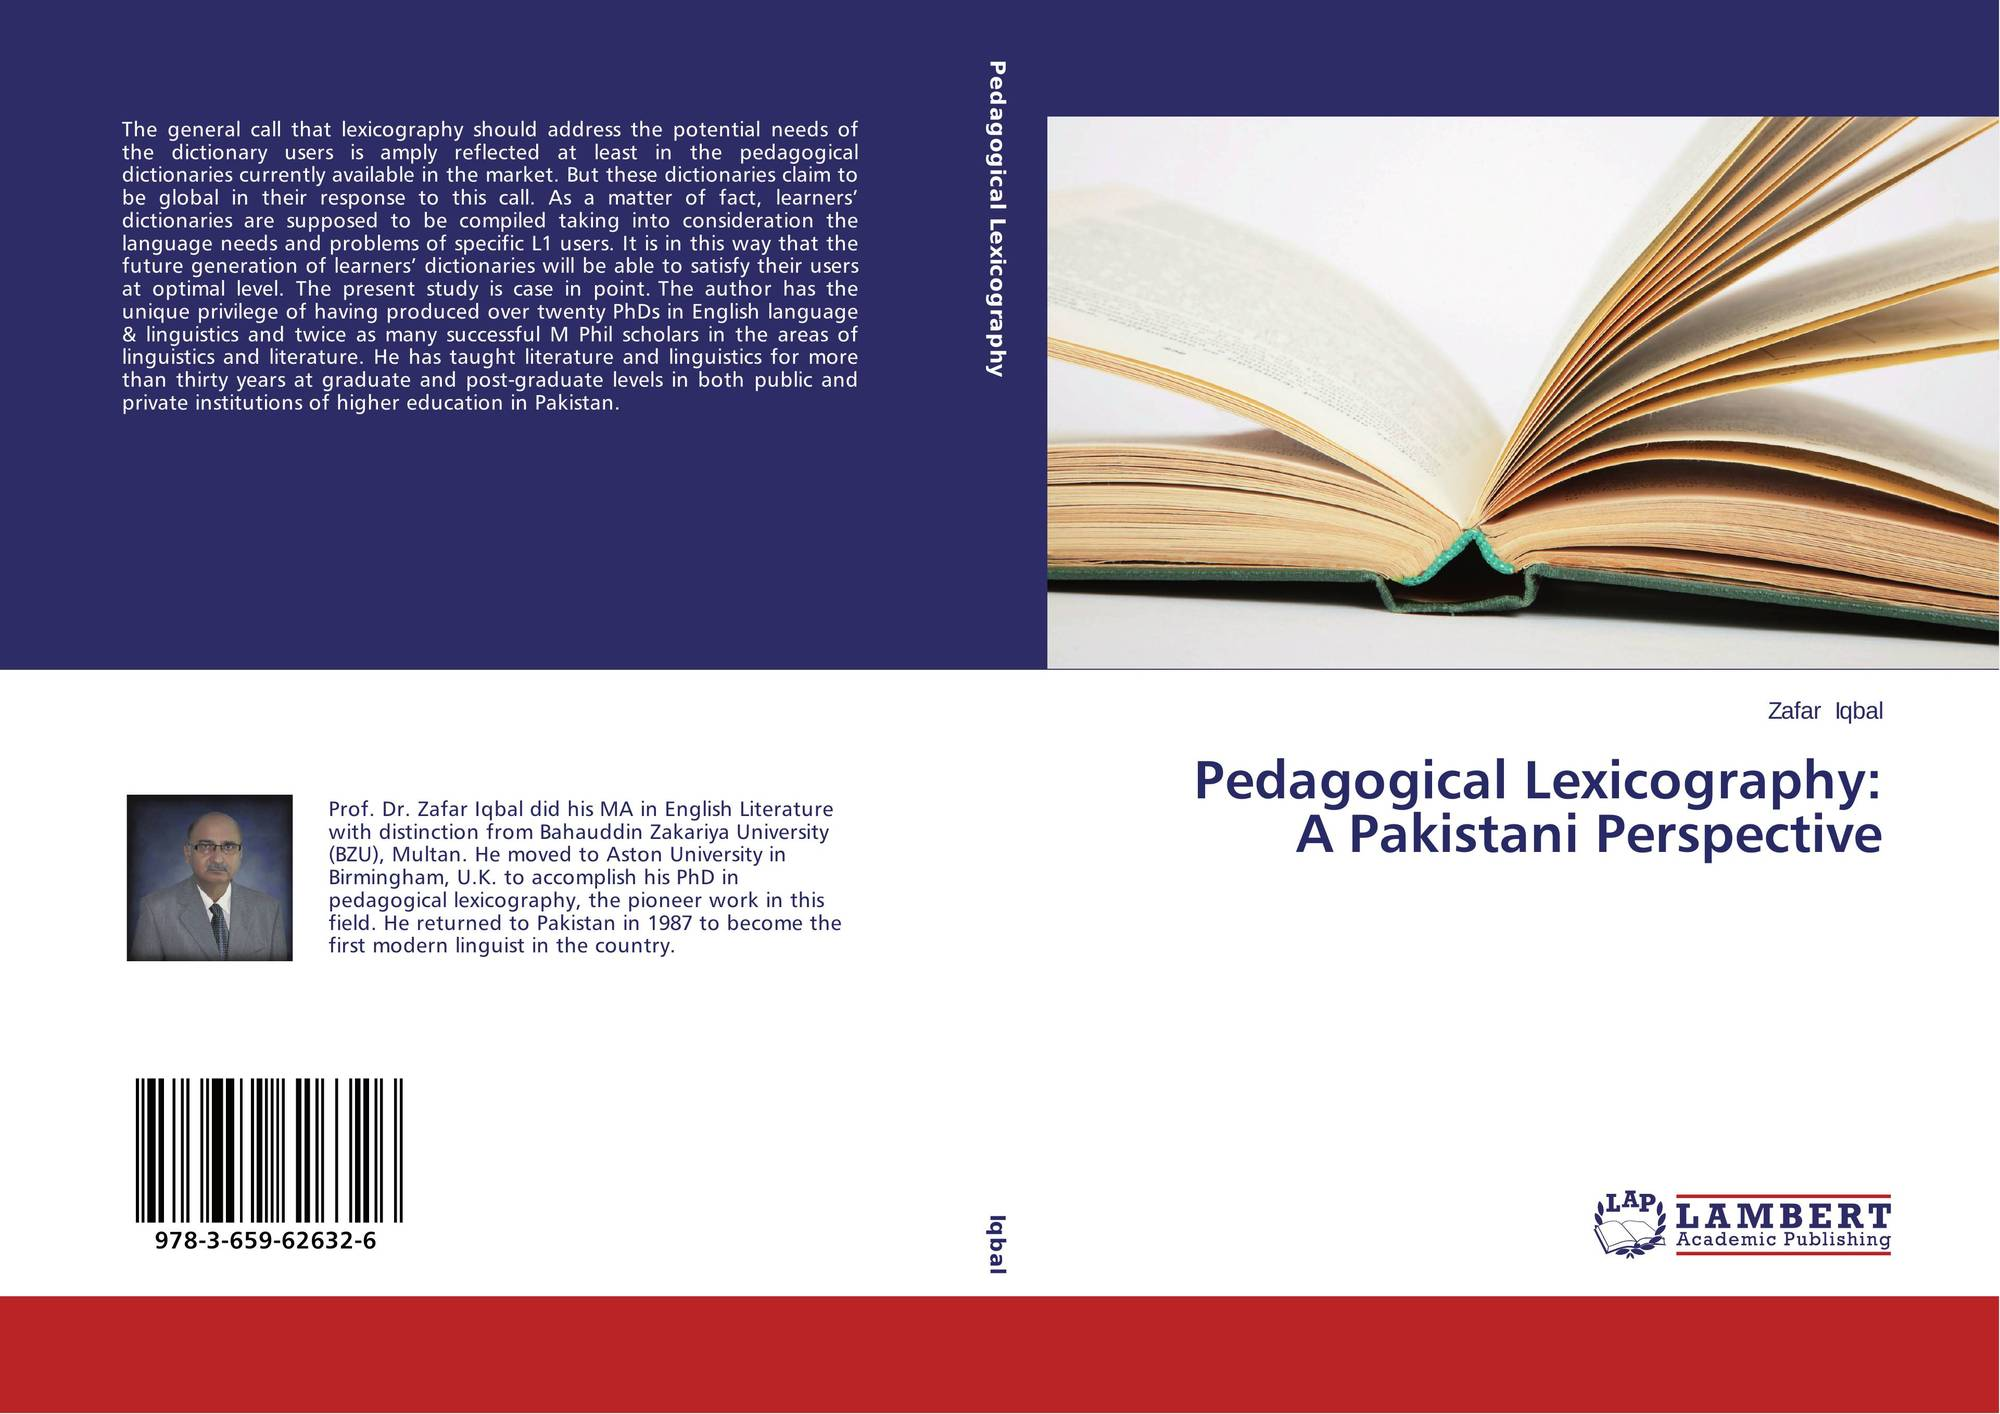 foreign related literature on factors affecting learning and academic performance